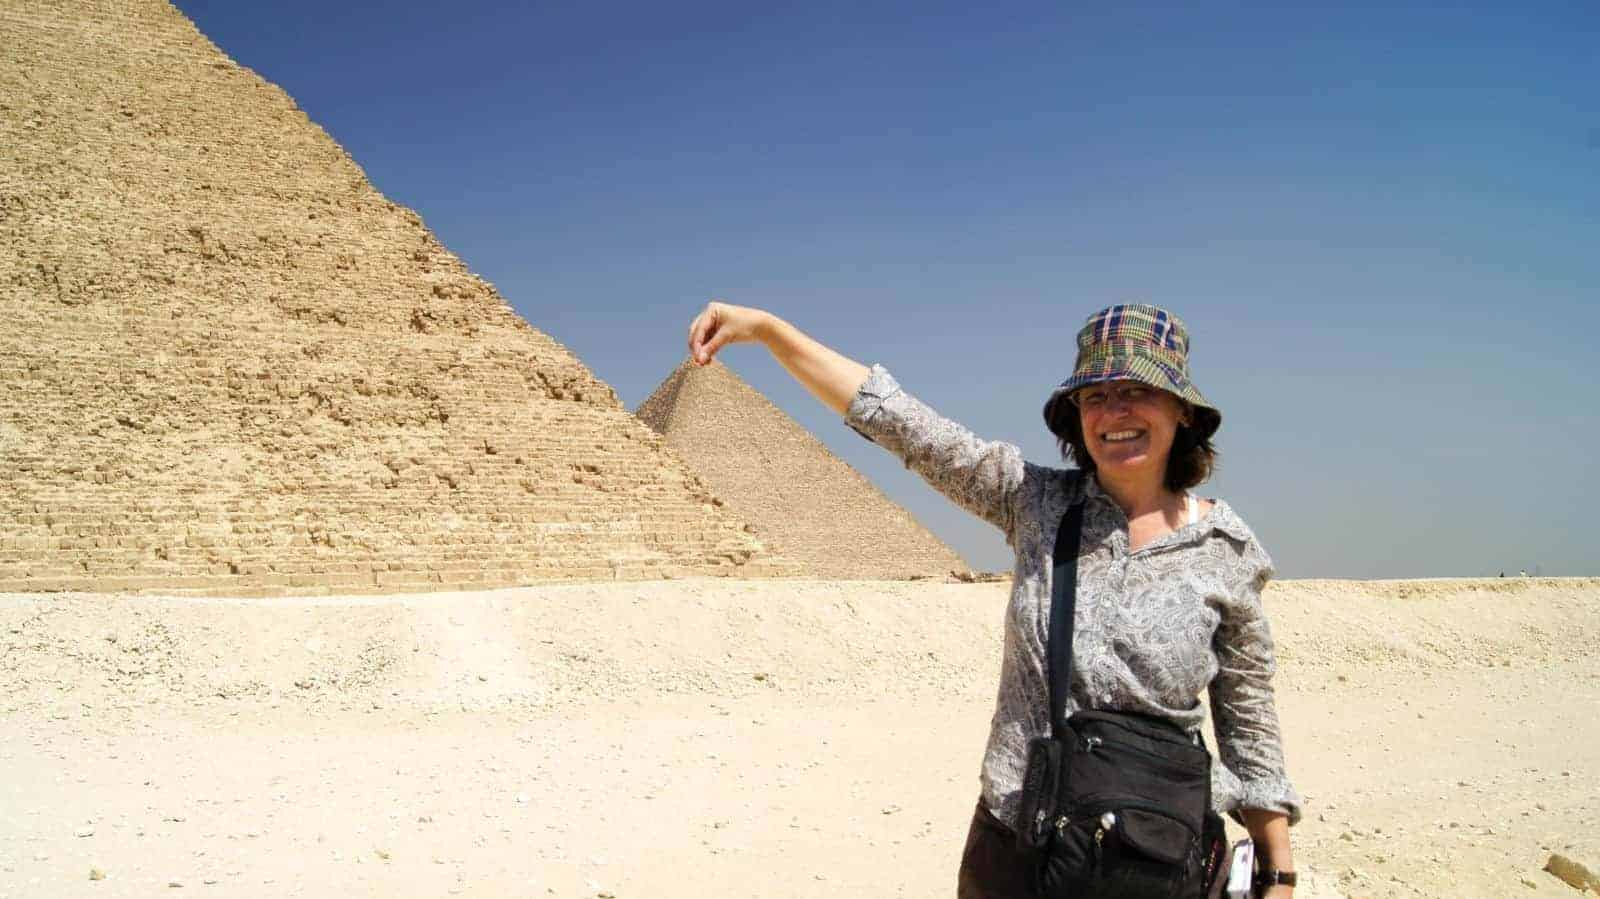 cropped Zora ONeill at the Pyramids credit Abdallah